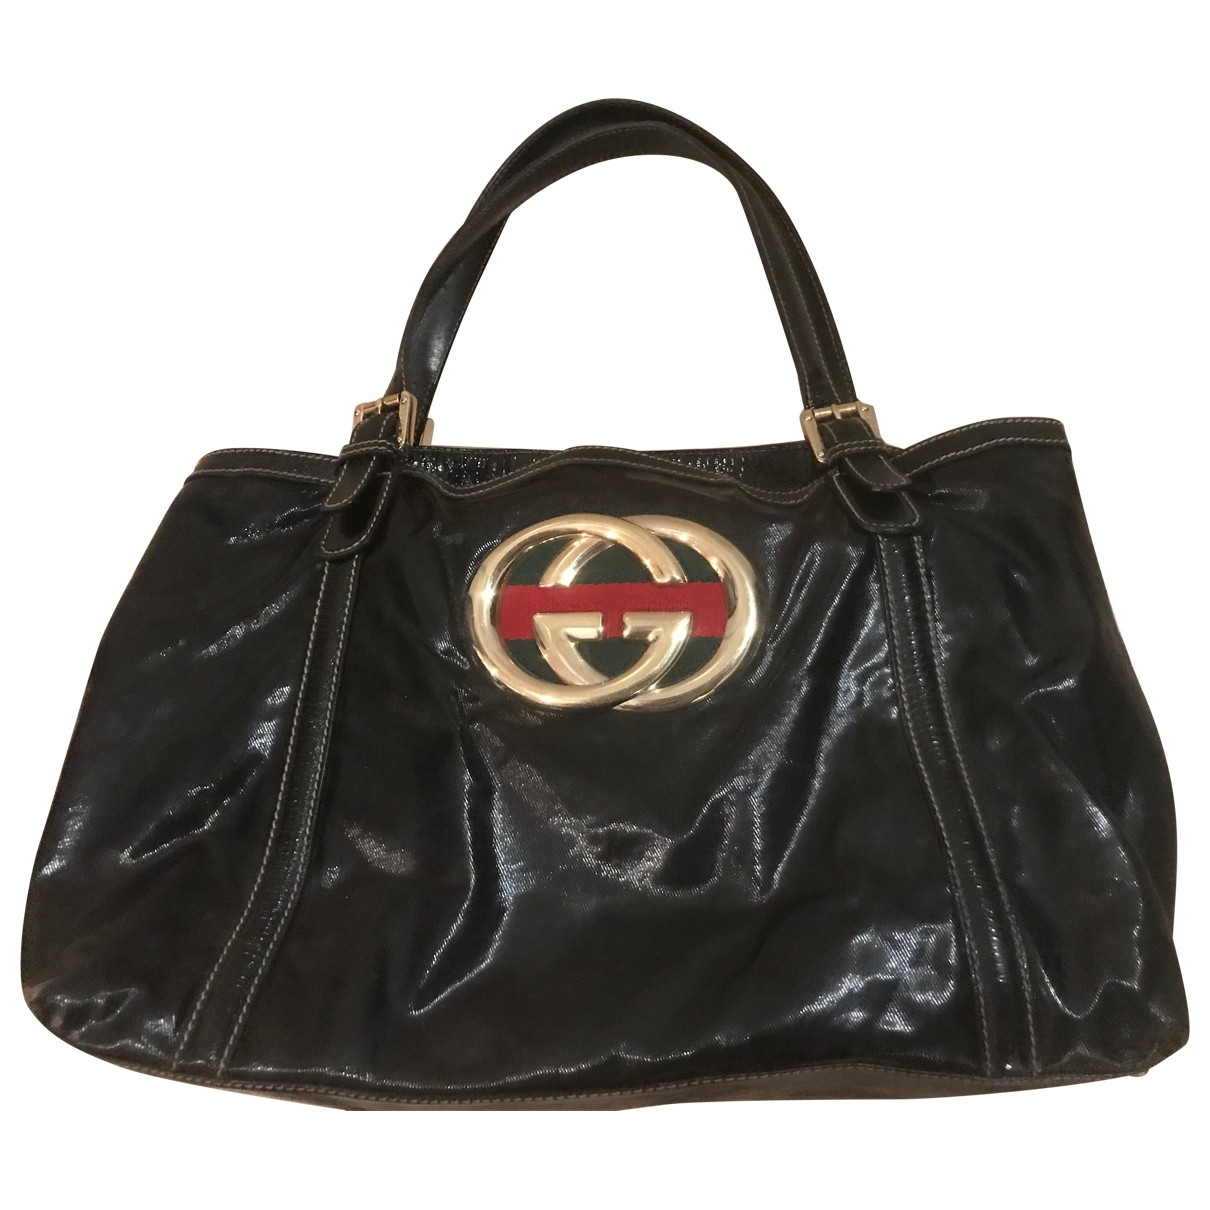 Gucci \N Black Patent leather handbag for Women \N